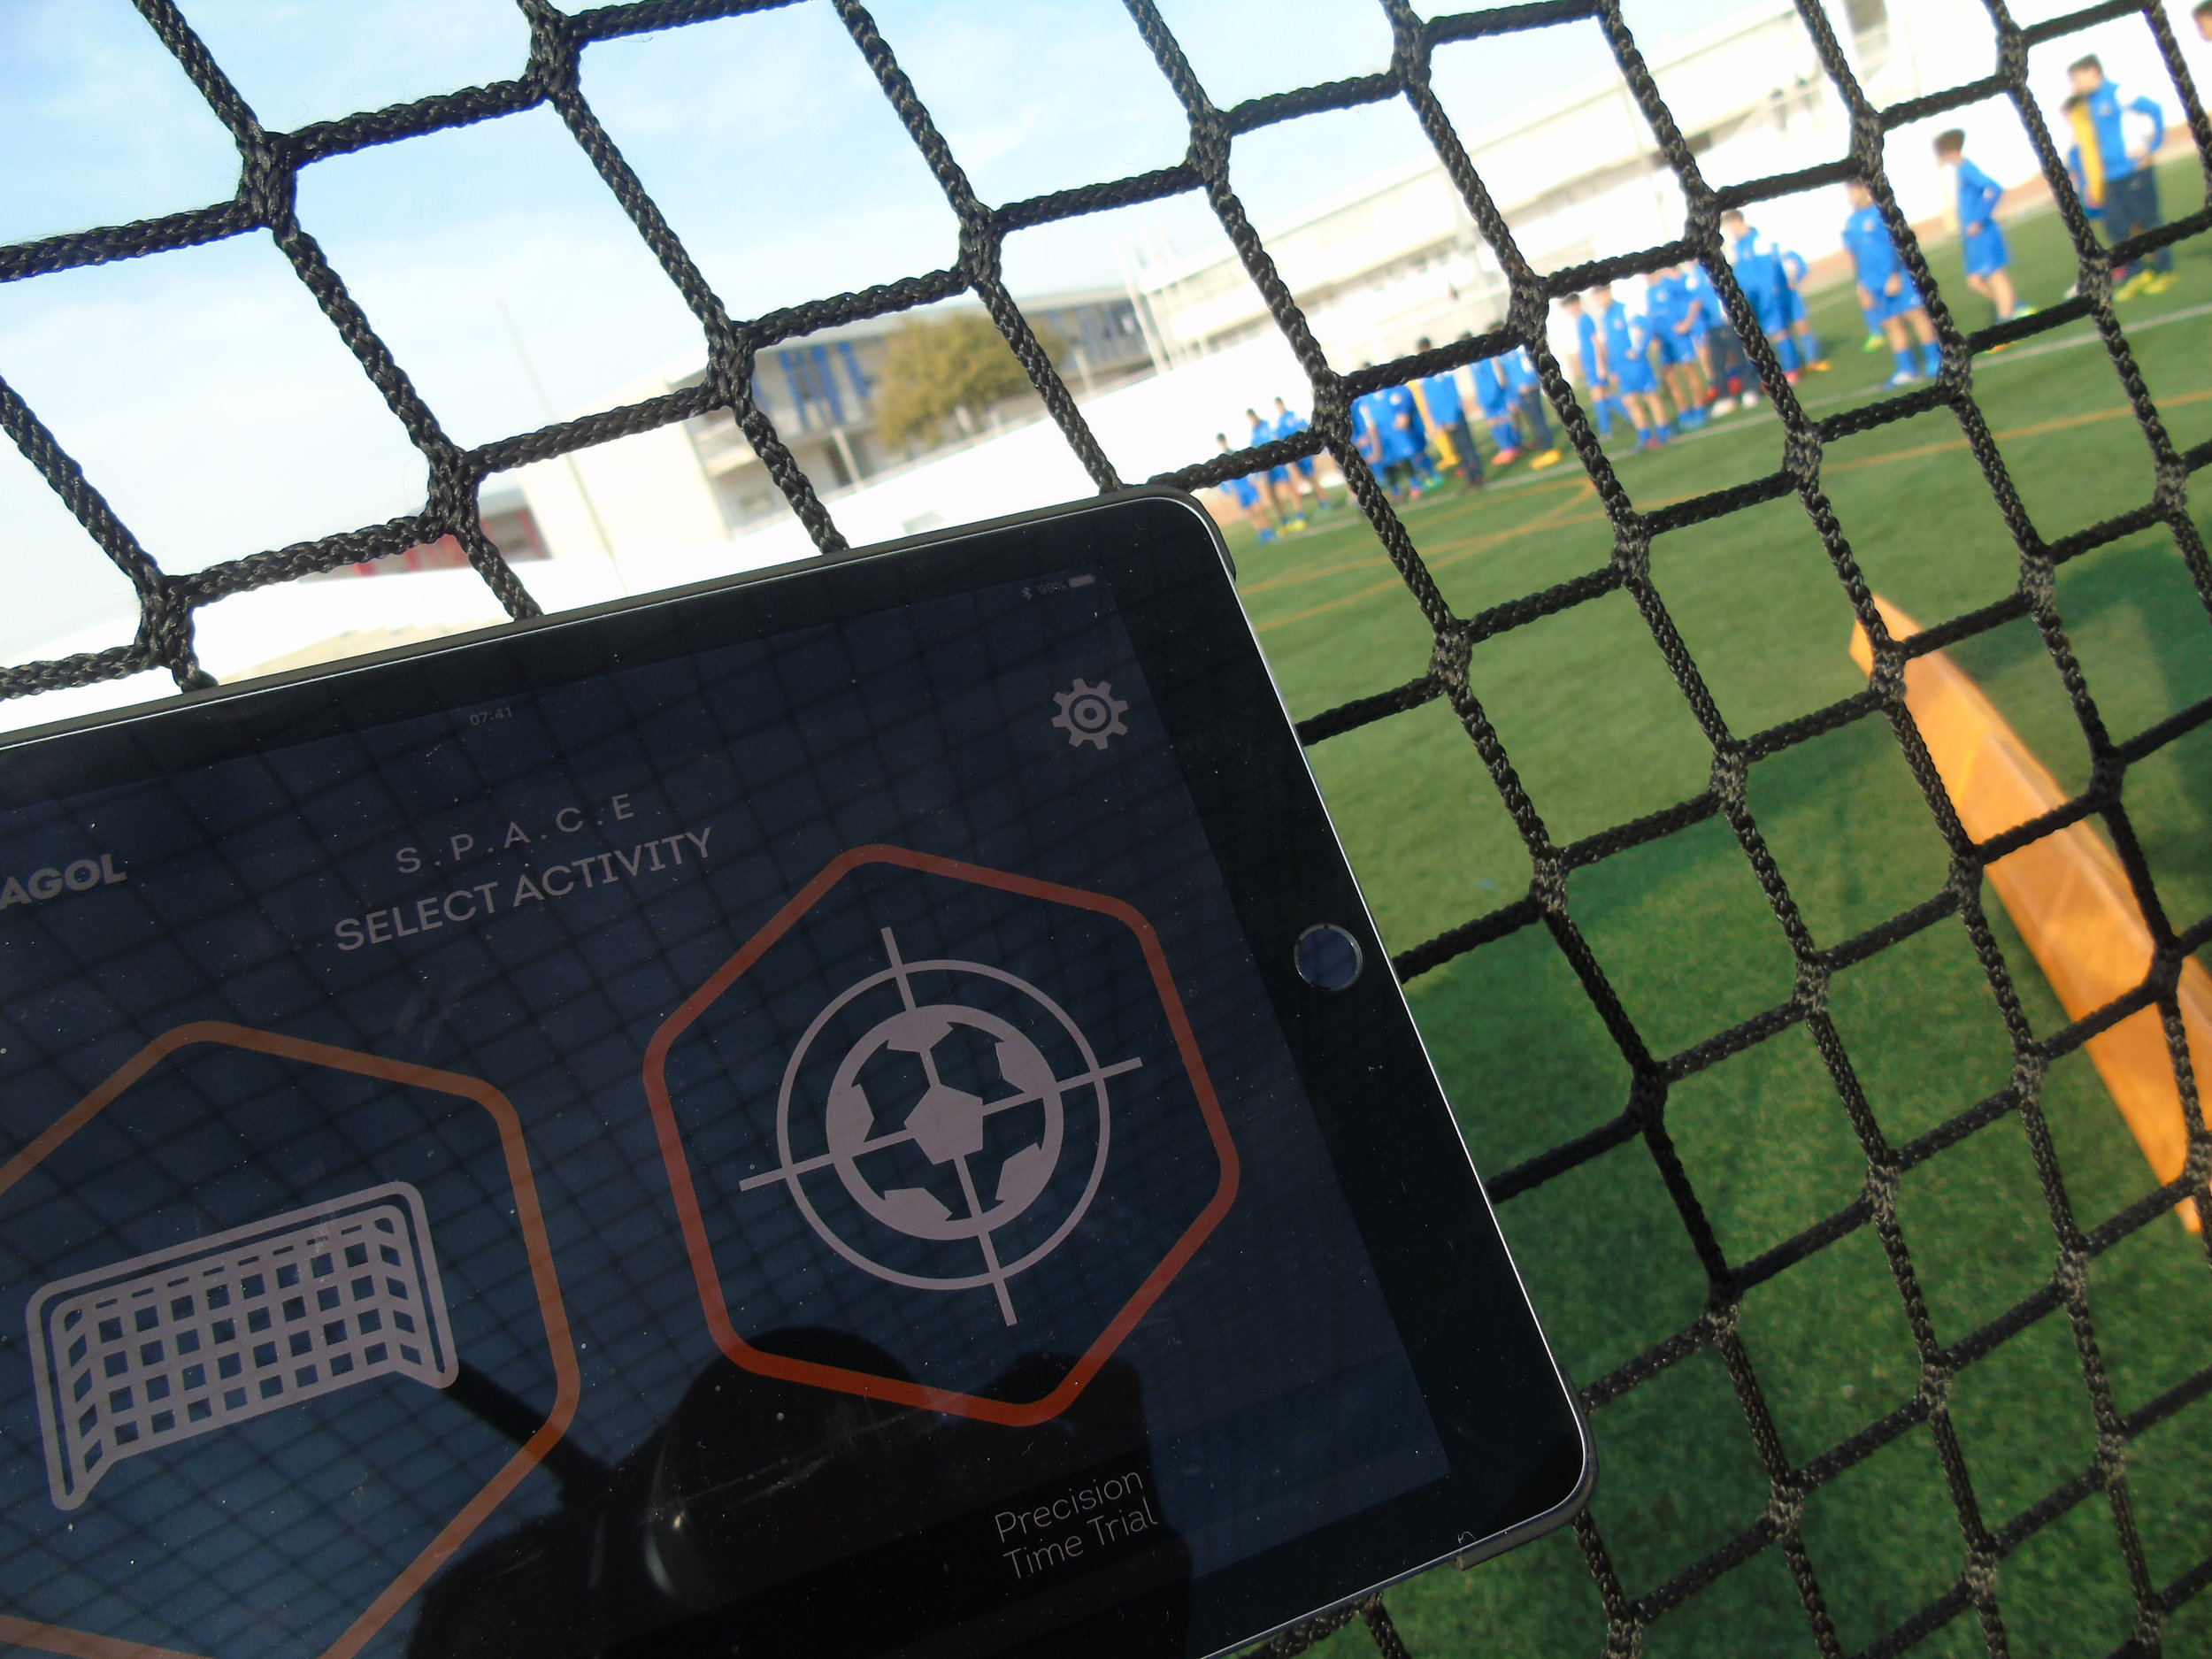 """Proprietary Tech Software - The Hexagol Tech Pack offers a revolutionary way to enjoy football. By combining traditional drills with cutting edge technology players can test and track improvements in ball-control, passing, shooting, reactions and stamina.Within the """"Cell', the Tech Pack consists of 12 LED illuminated targets; 6 net mounted and 6 corner mounted kick-boards. These connect wirelessly to the Hexagol S.P.A.C.E.S iOS app via the bluetooth 4.0 Basestation. The simple and intuitive S.P.A.C.E.S app contains a number of games designed specifically to hone and improve certain player attributes."""